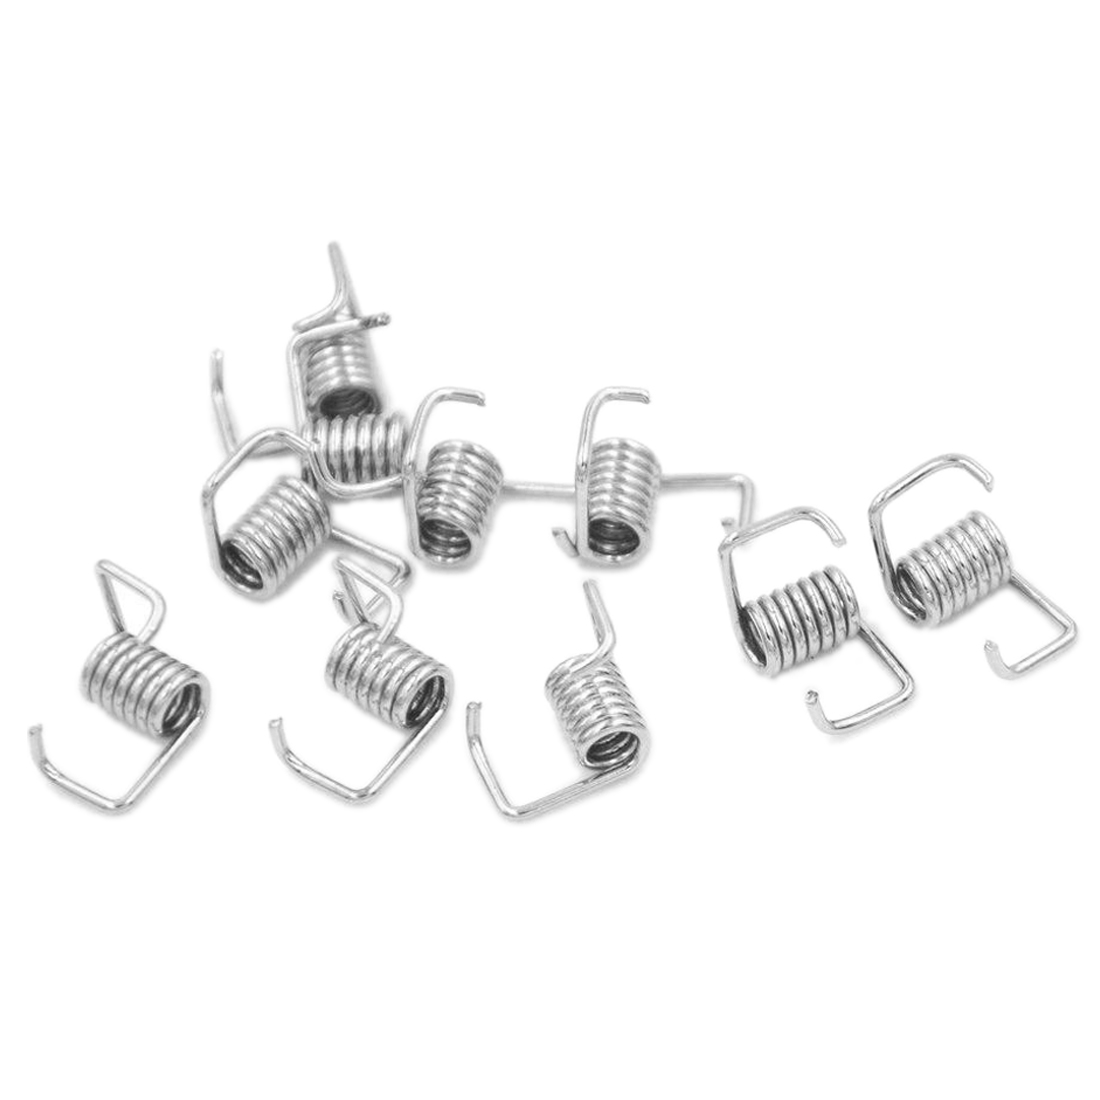 3D Printer Parts 10Pcs Locking Spring Tensioner For Reprap 3D Printer Part MXL GT2 Timing Belt Tensioner Spring